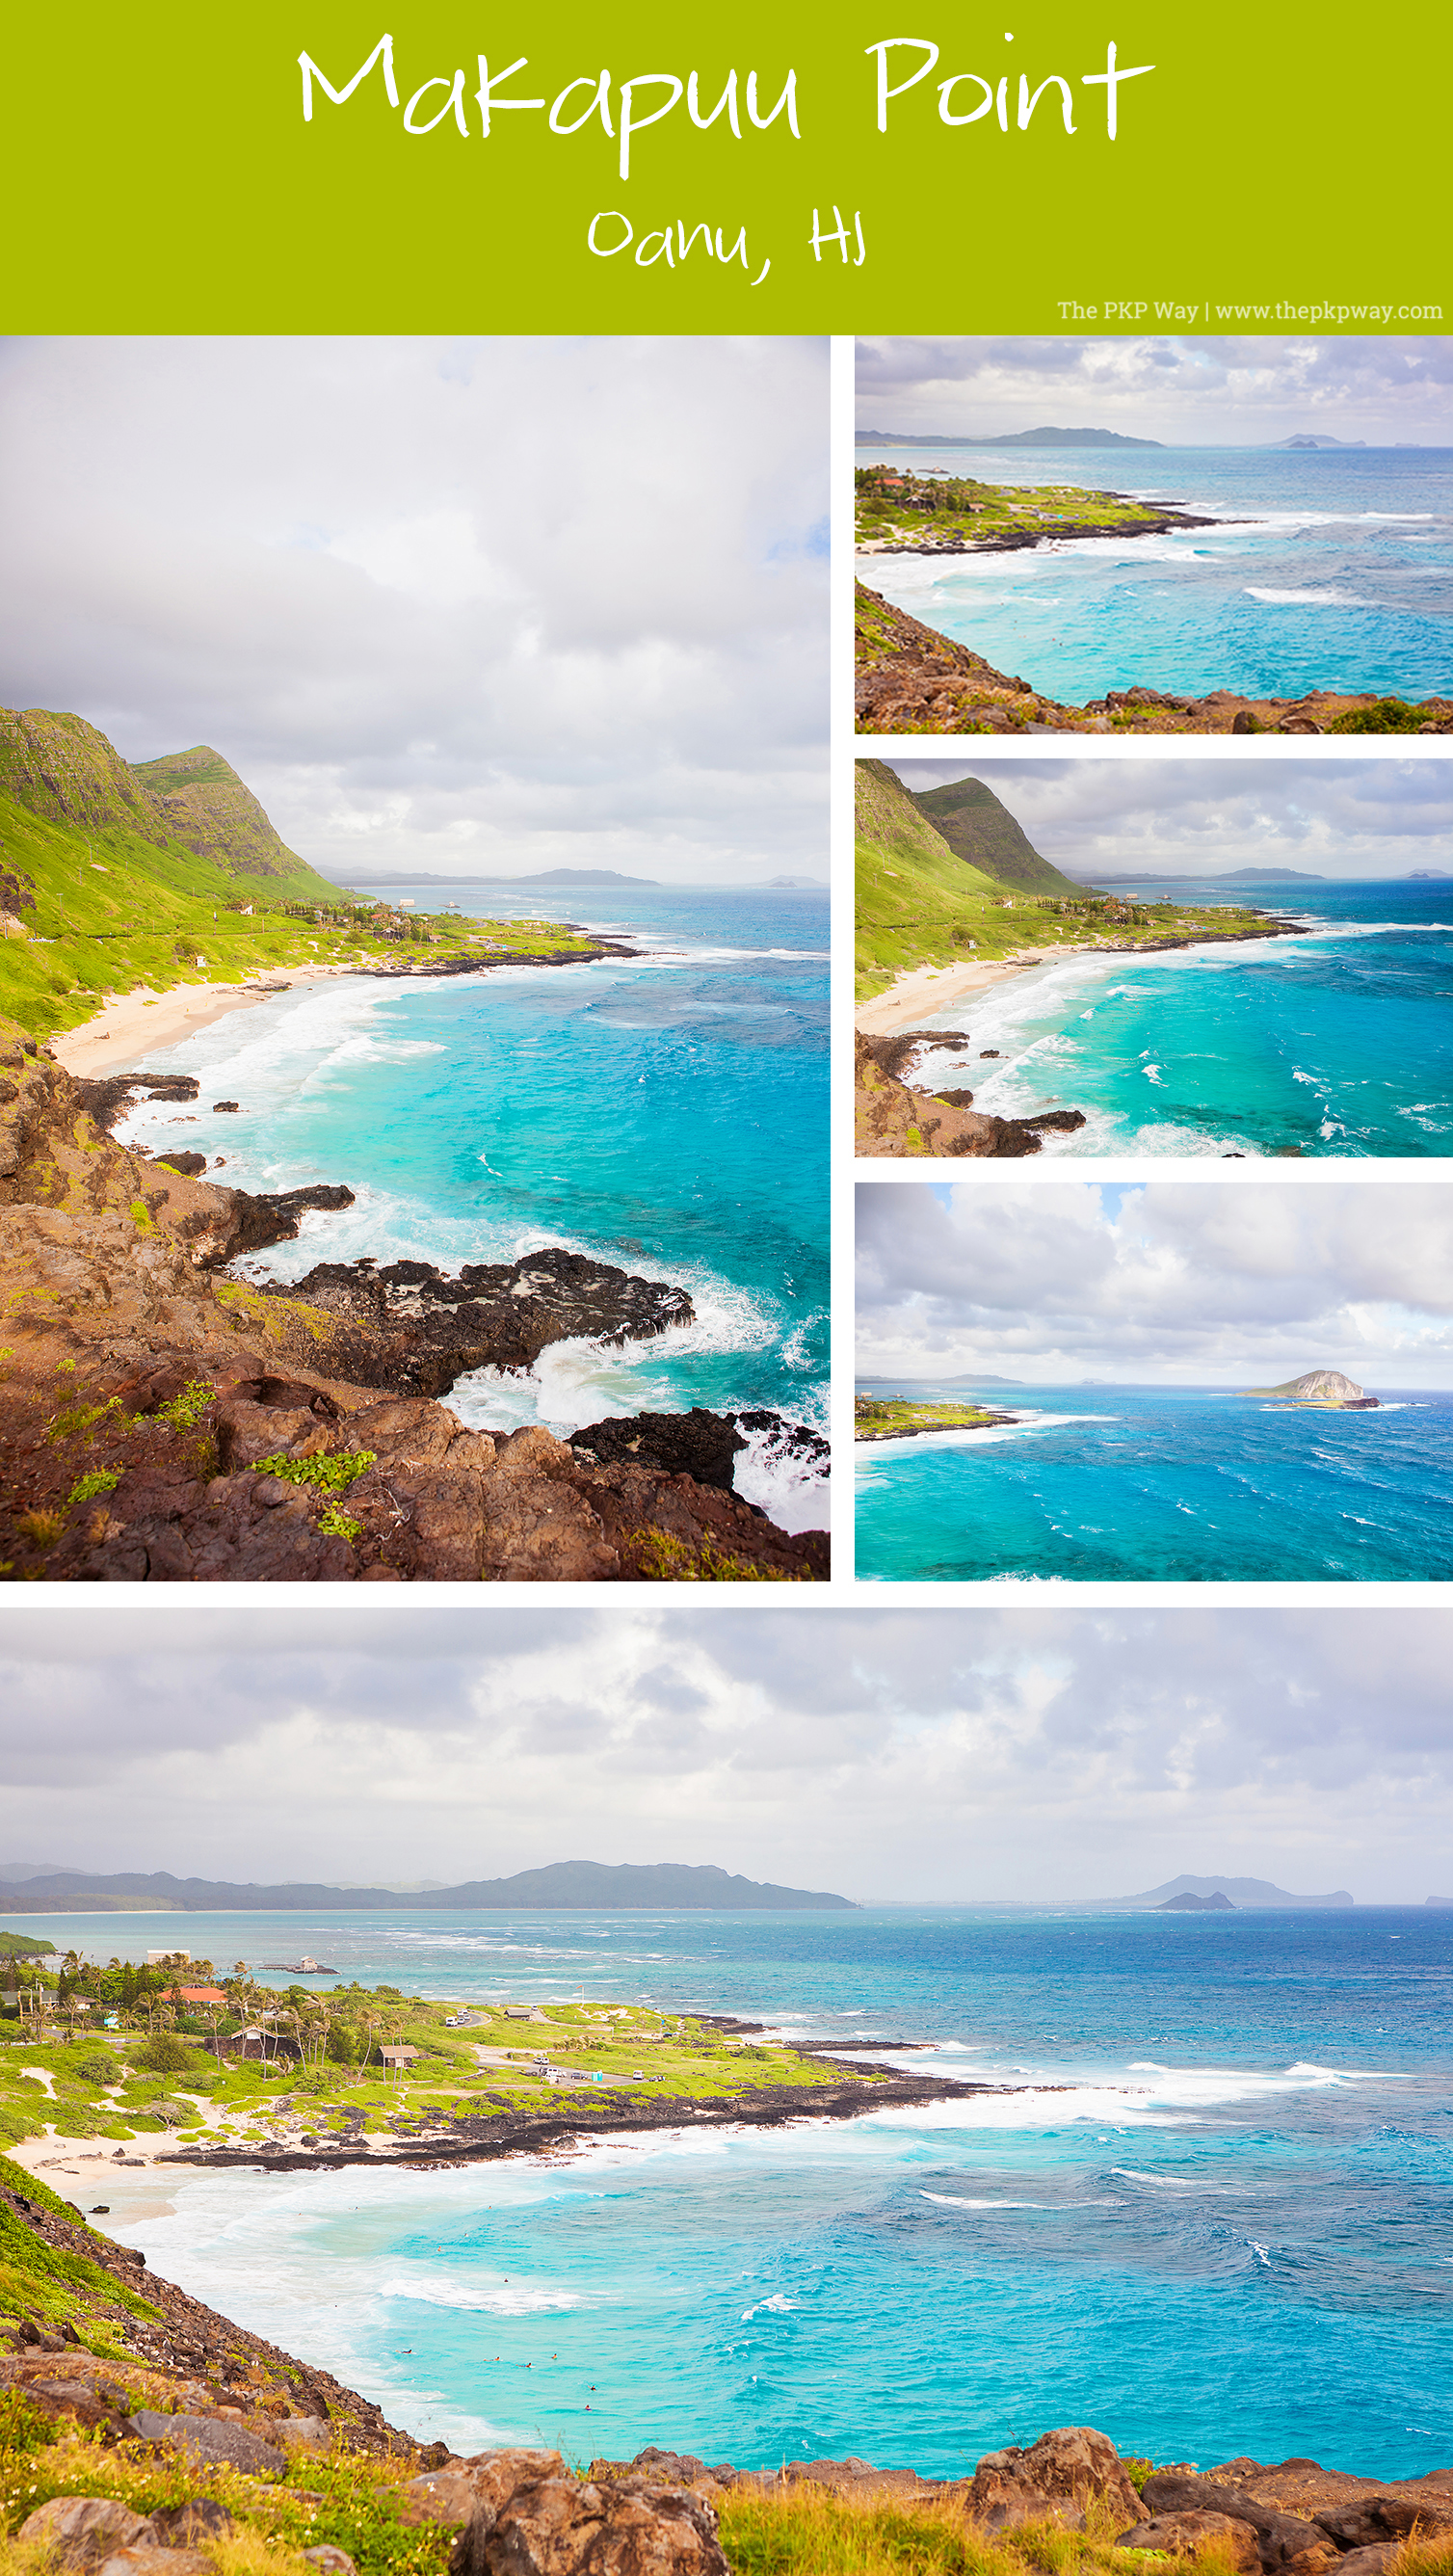 Oahu, Hawaii, Makapuu Point